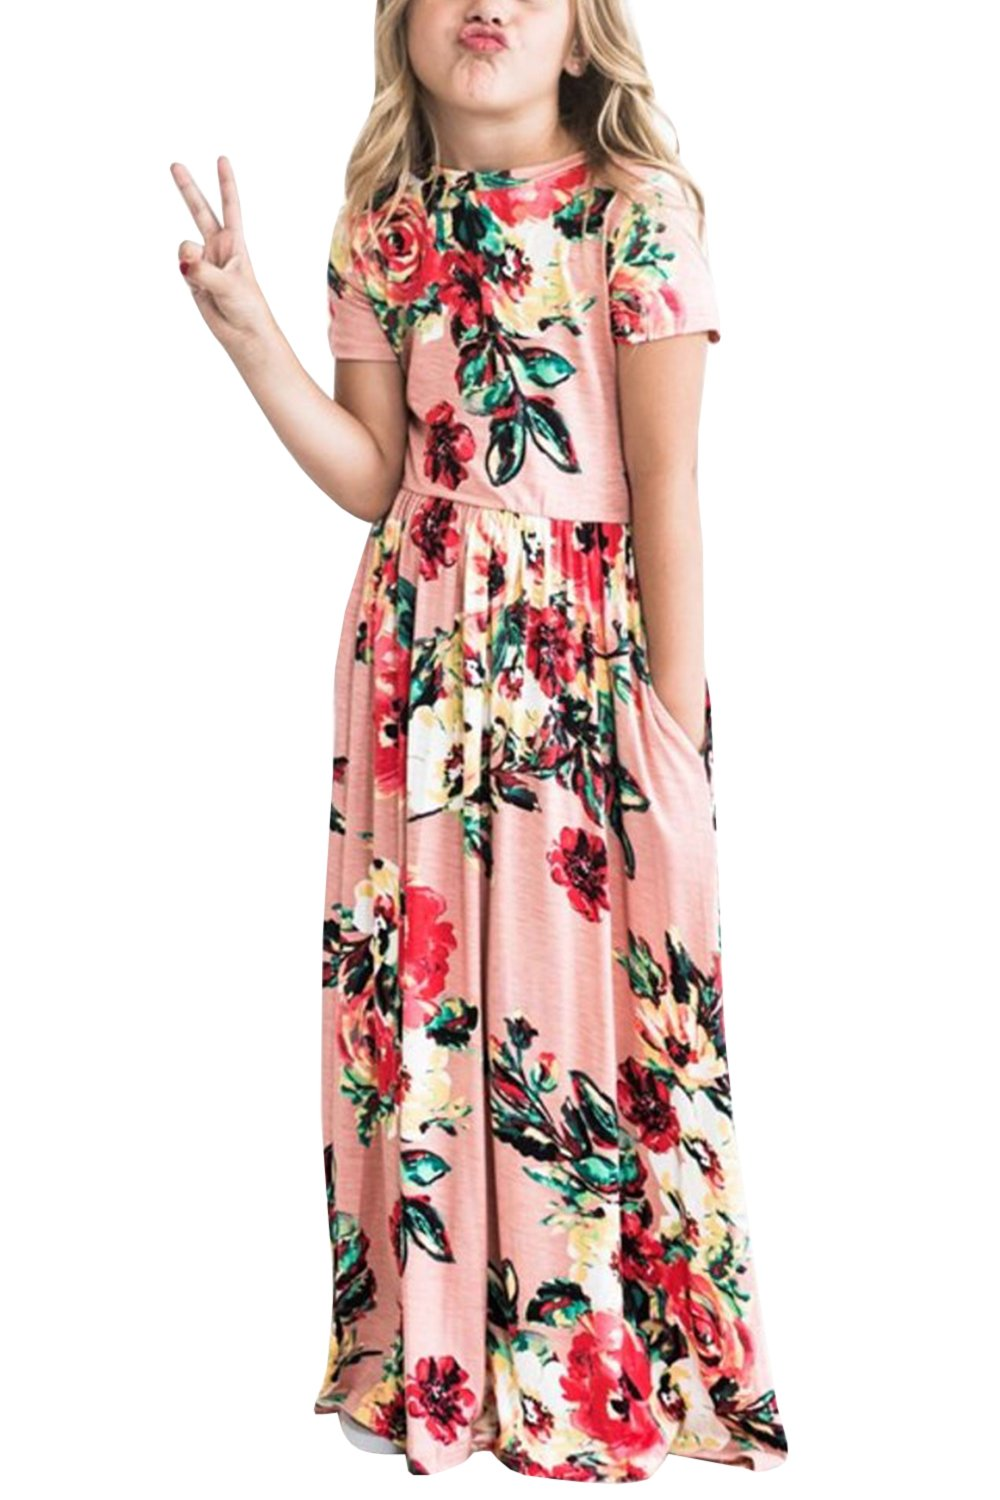 Baby Girls Dresses Toddler Floral Sleeveless Casual Summer Swing Long Maxi Dress with Pockets (11-12 Years, Pink)